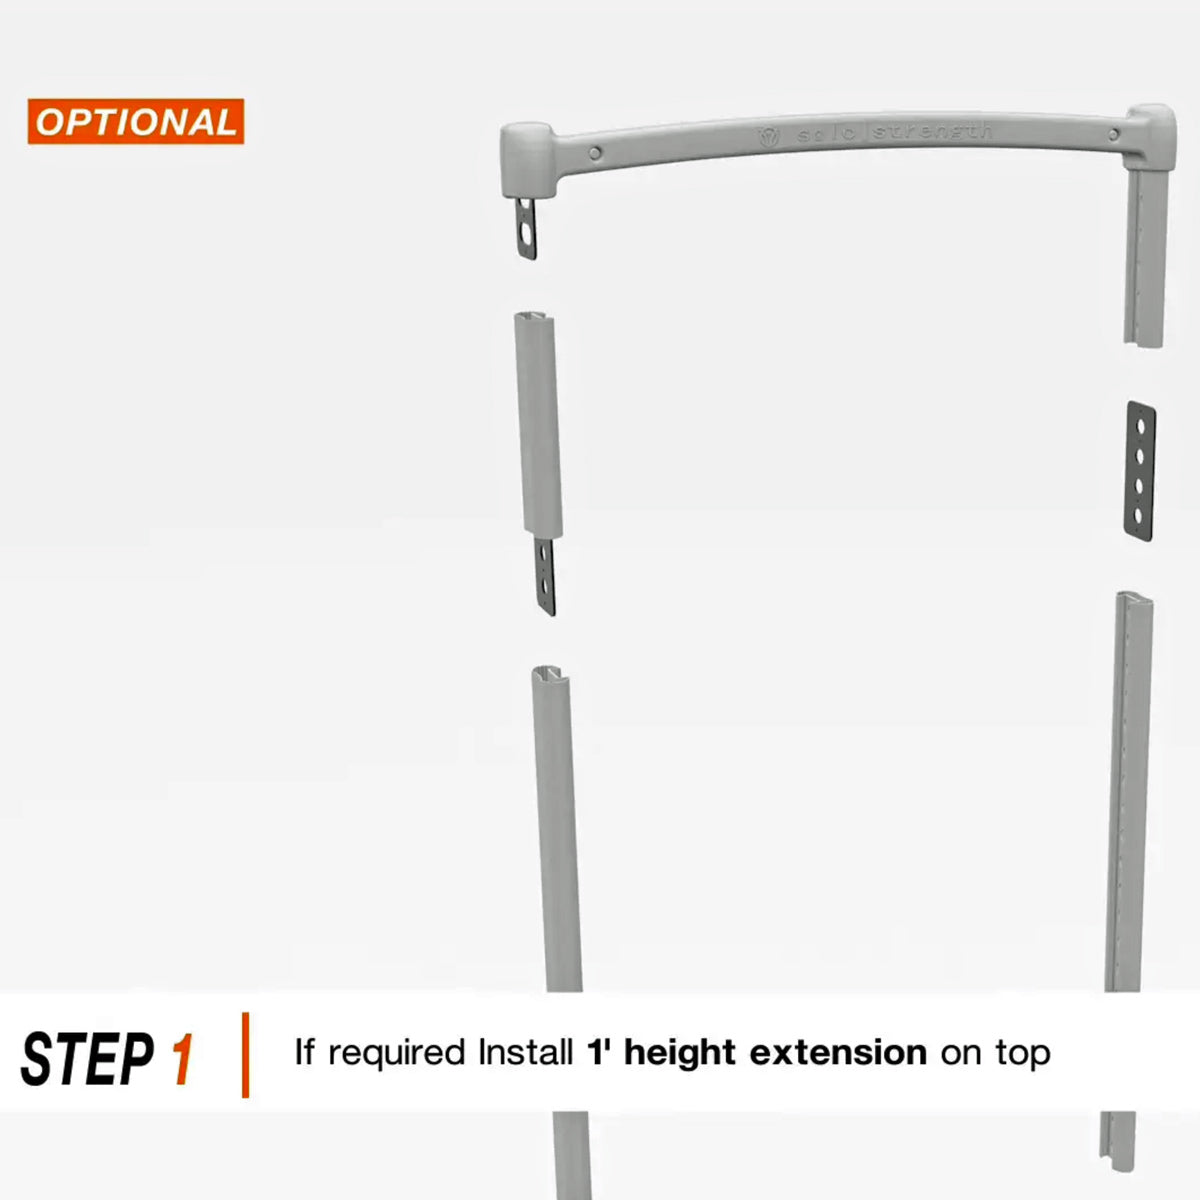 1 Foot Height Extension